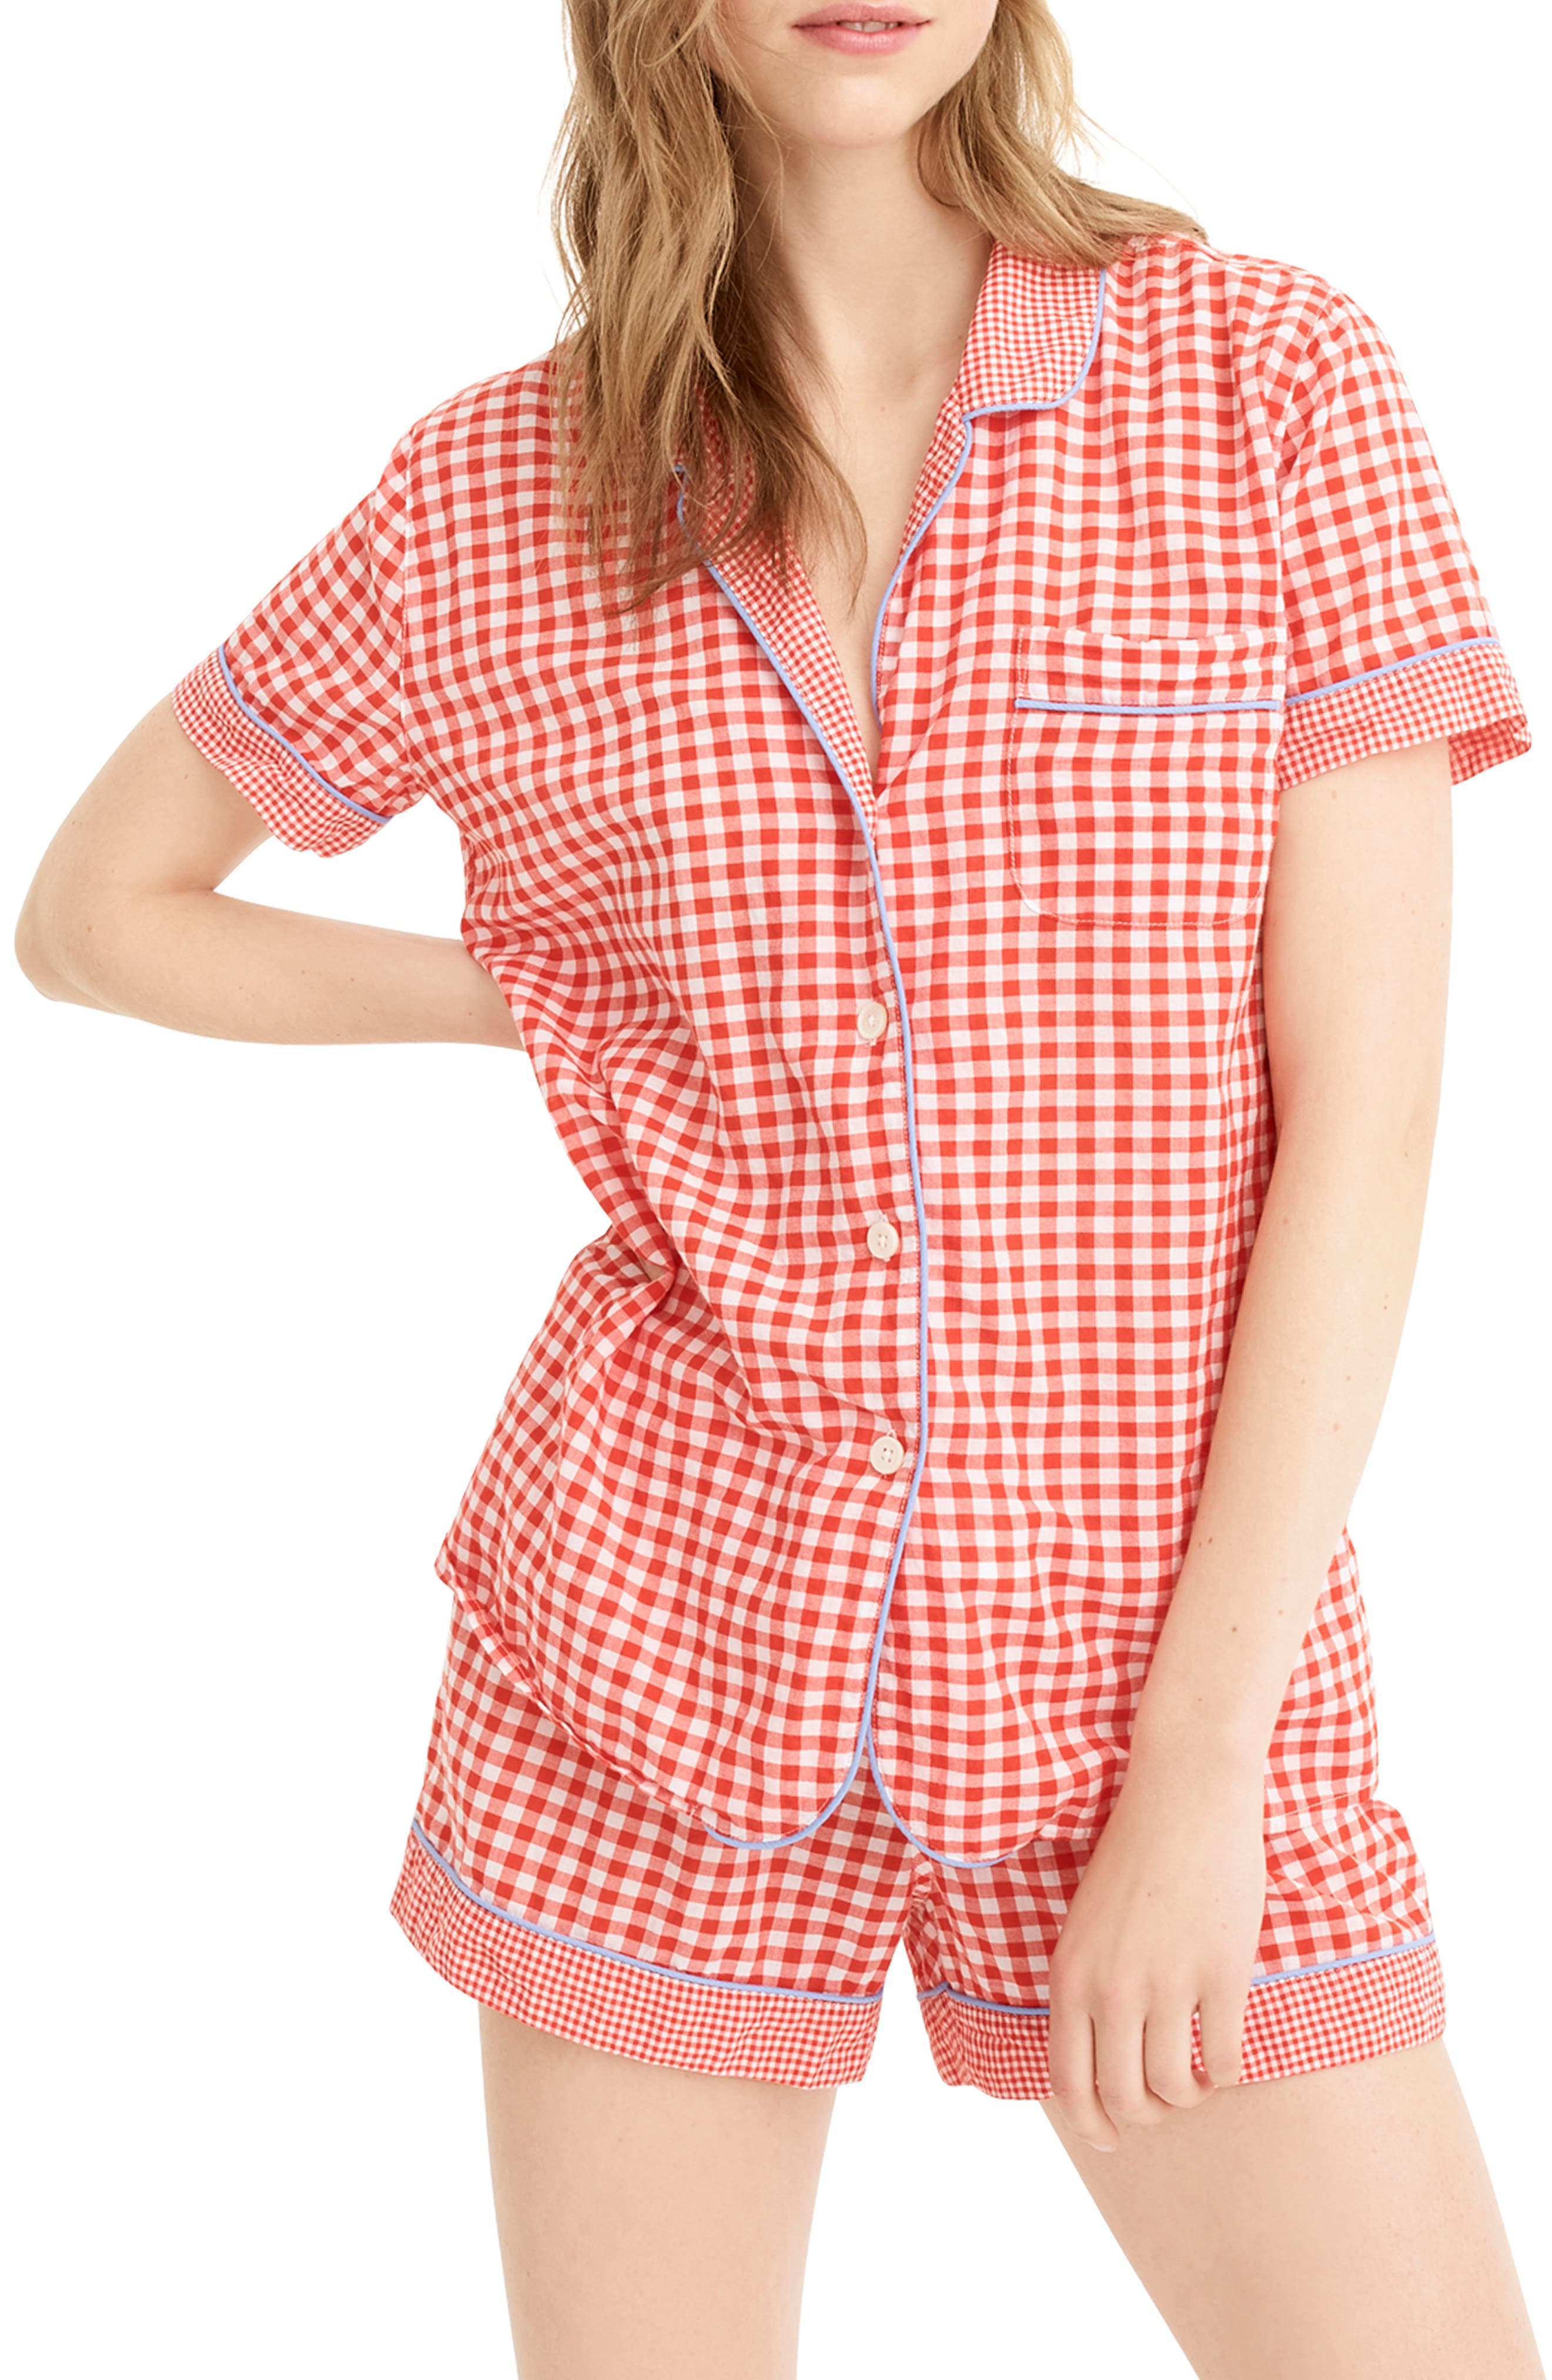 Plus Size J.crew Mixed Gingham Cotton Pajama Top, Size - Red